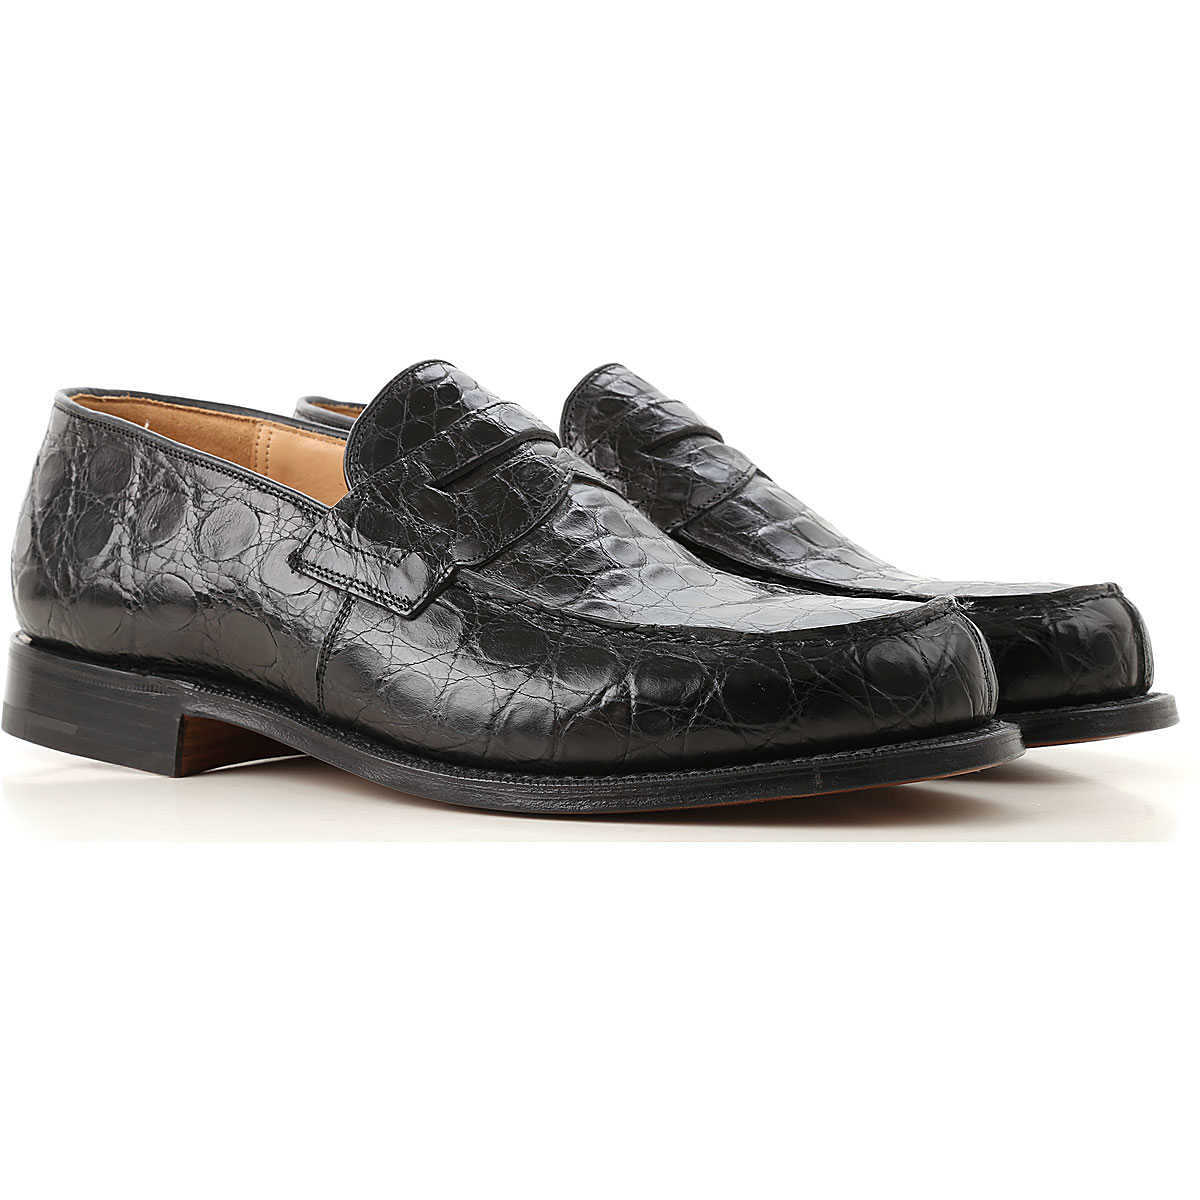 Church's Loafers for Men in Outlet Black Canada - GOOFASH - Mens LOAFERS